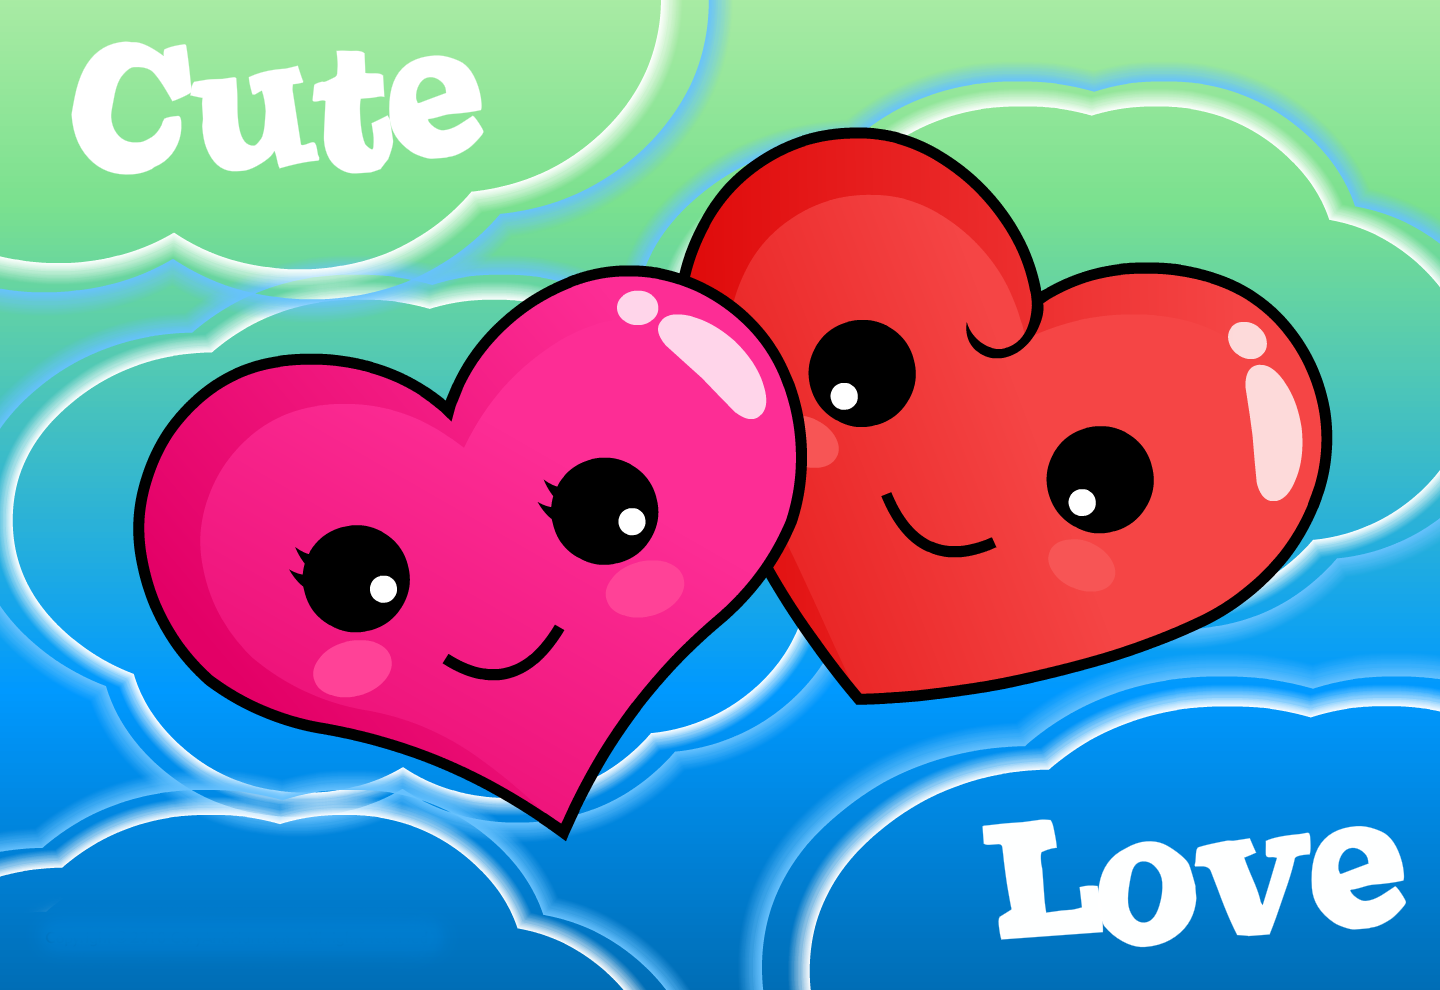 Cute Love Desktop Wallpapers 1440x990